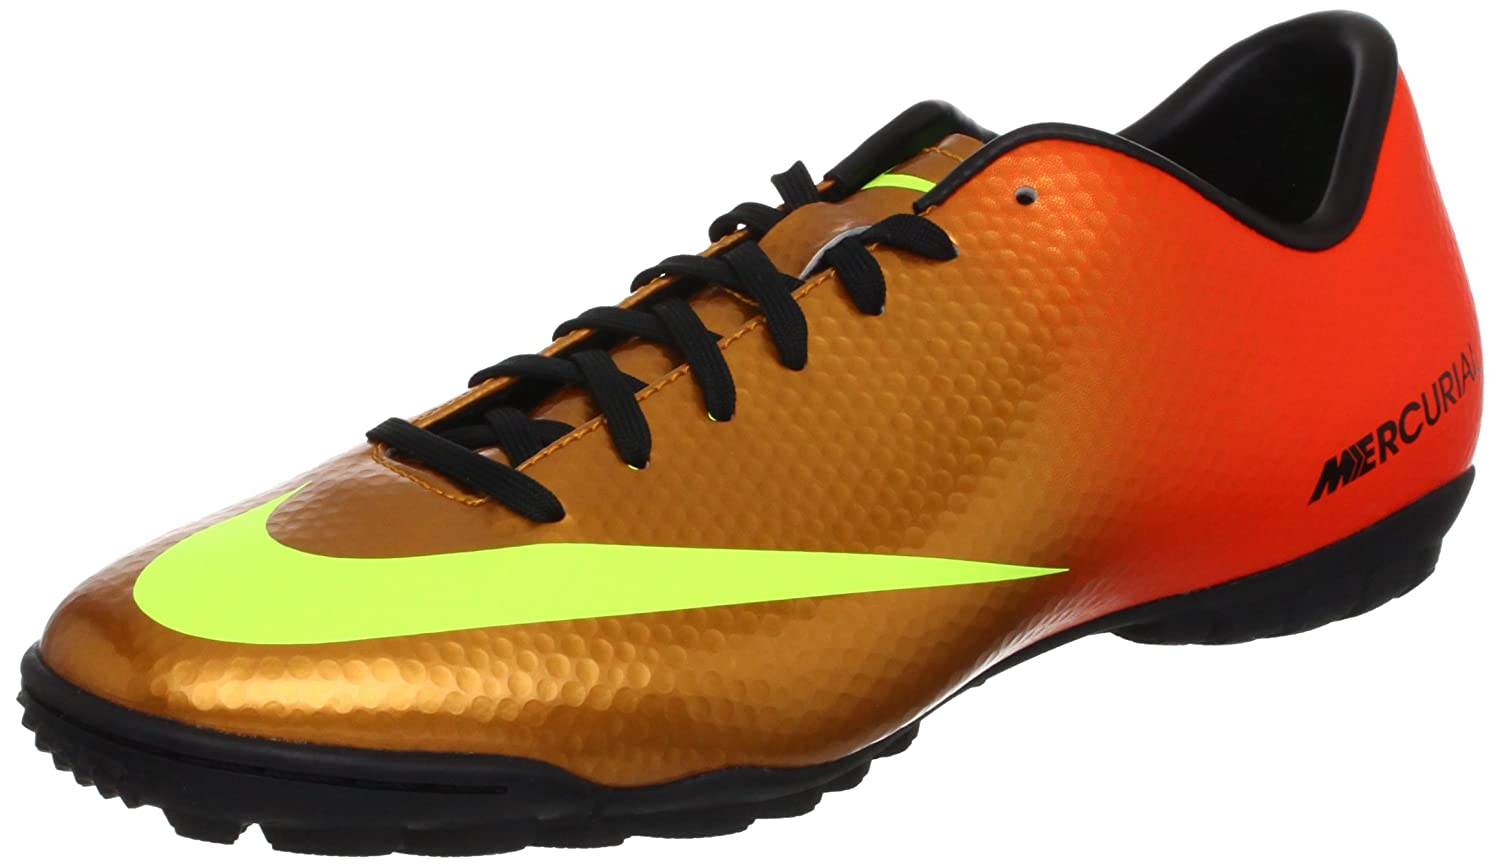 Nike Mercurial Victory IV TF - (Sunset/Total Crimson/Black/Volt) B008D35FO2 7.5 D(M) US